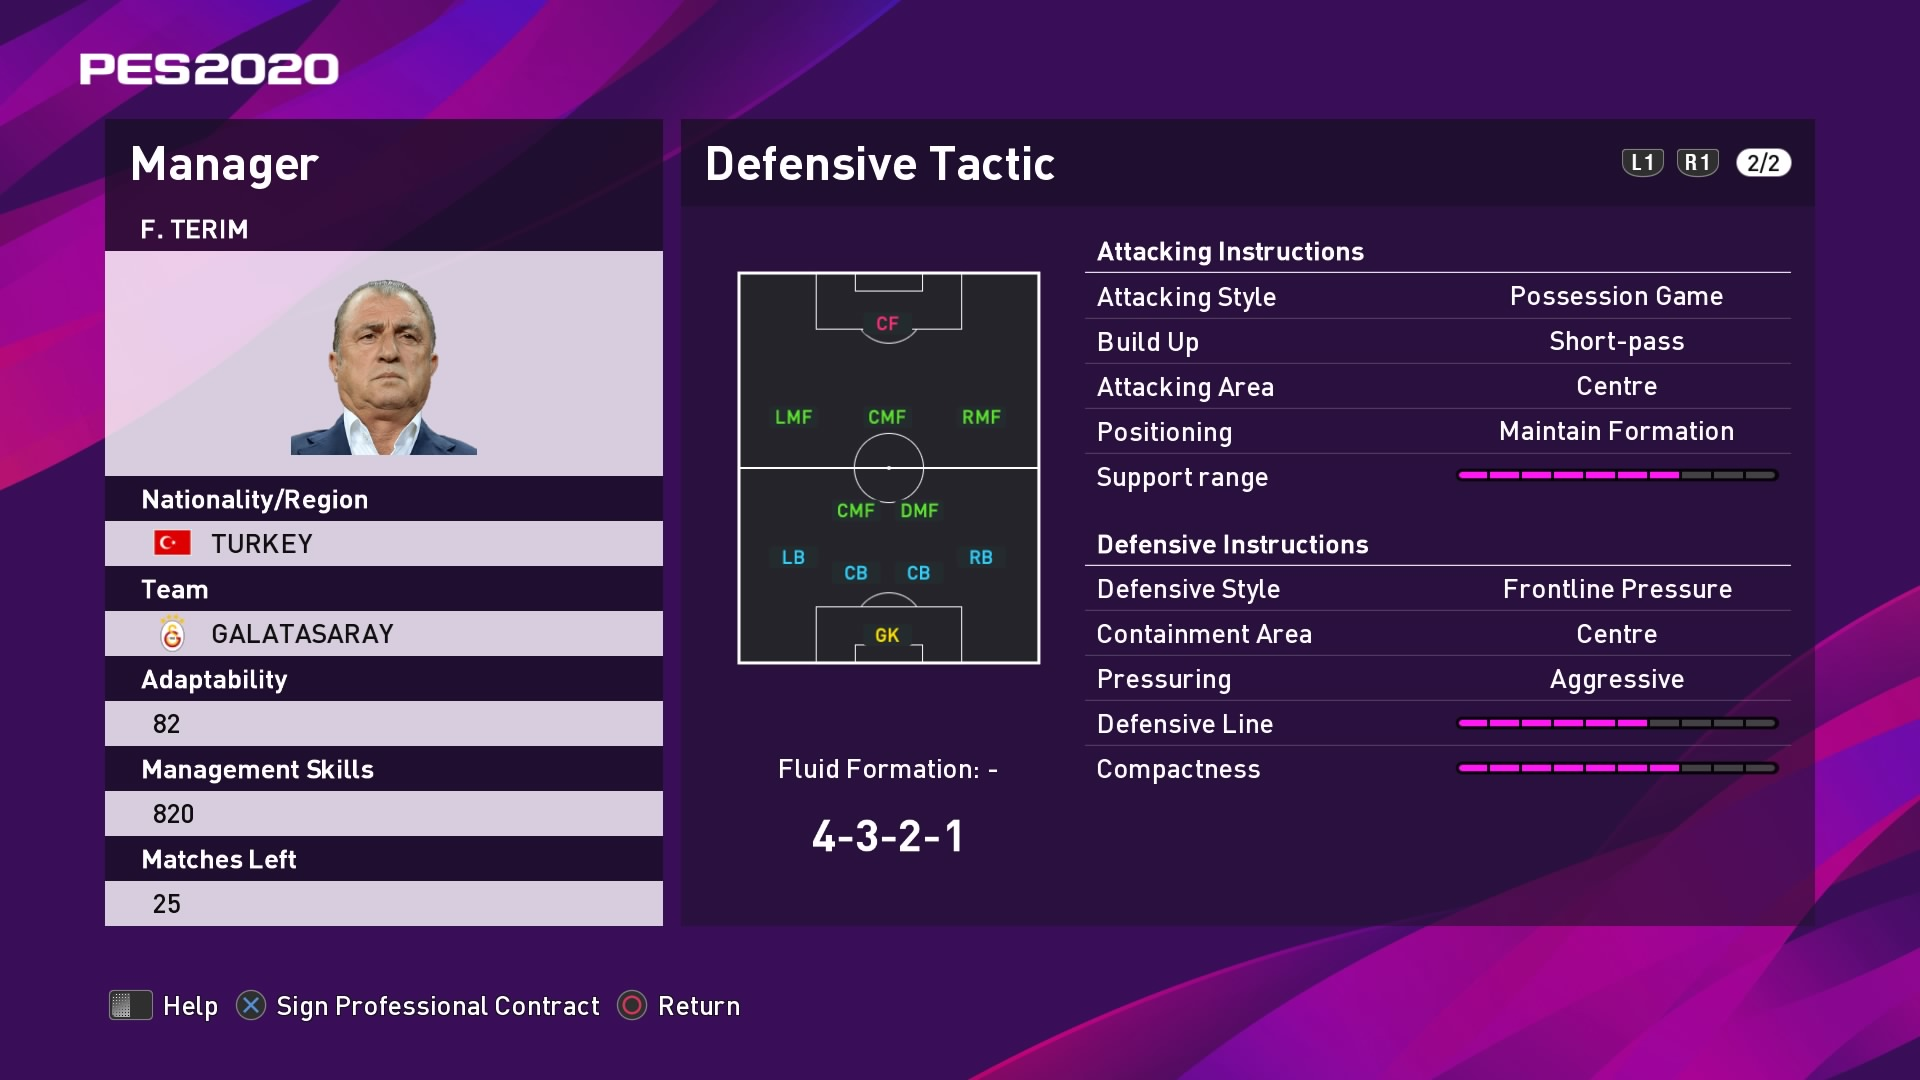 F. Terim (2) (Fatih Terim) Defensive Tactic in PES 2020 myClub